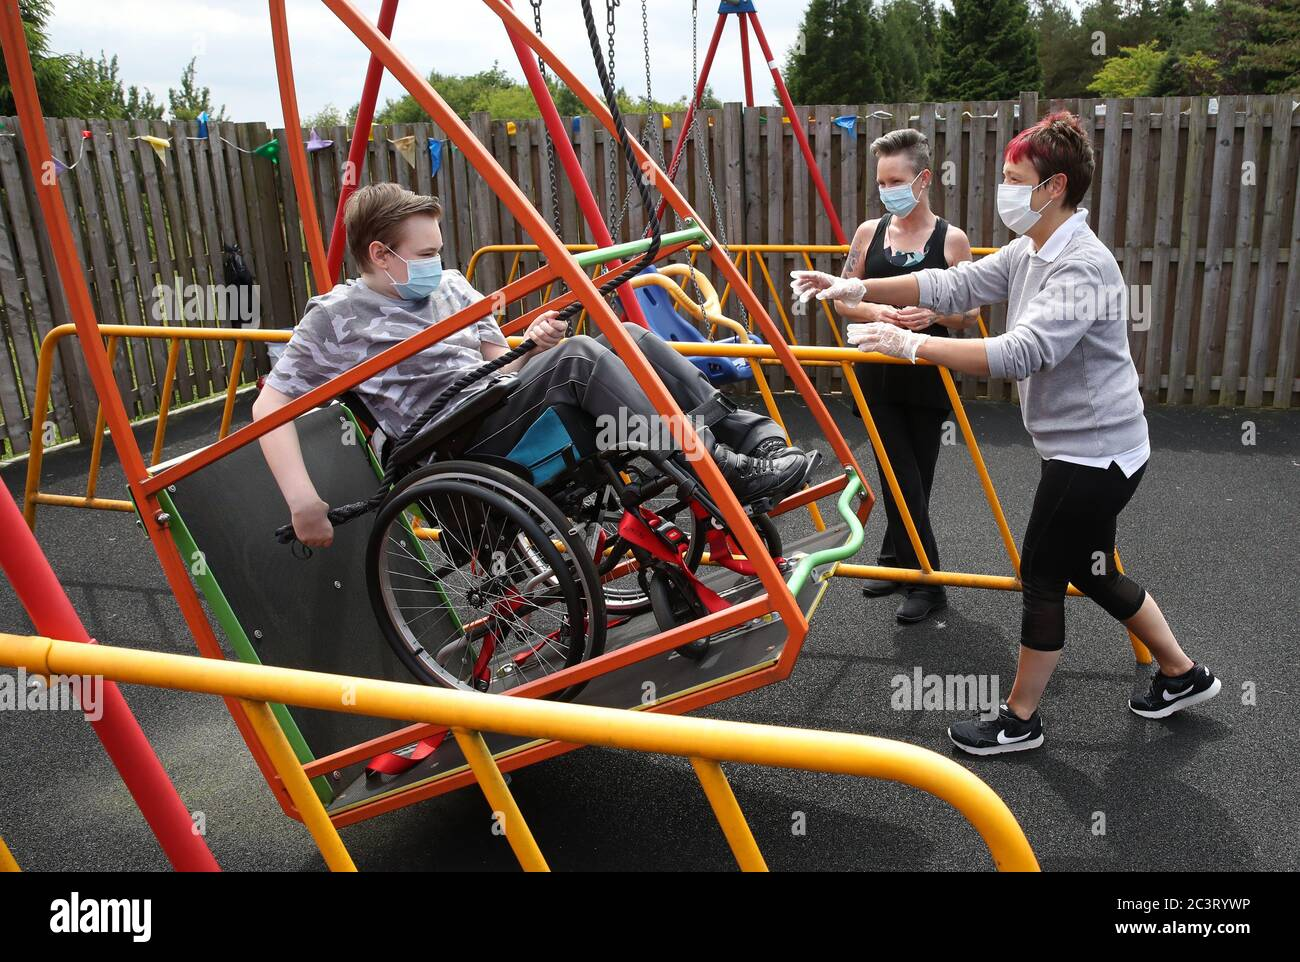 Gregor Marshall with his mum Karen alongside Early Years Practitioner Catherine Anderson (right) as Gregor has a ride on the wheelchair swing in the outside therapy area at the Craighalbert Centre. Coronavirus adaptations have been installed at the Scottish Centre for Children with Motor Impairments, Craighalbert Centre, Cumbernauld, as Scotland continues gradually lifting coronavirus lockdown measures. Stock Photo